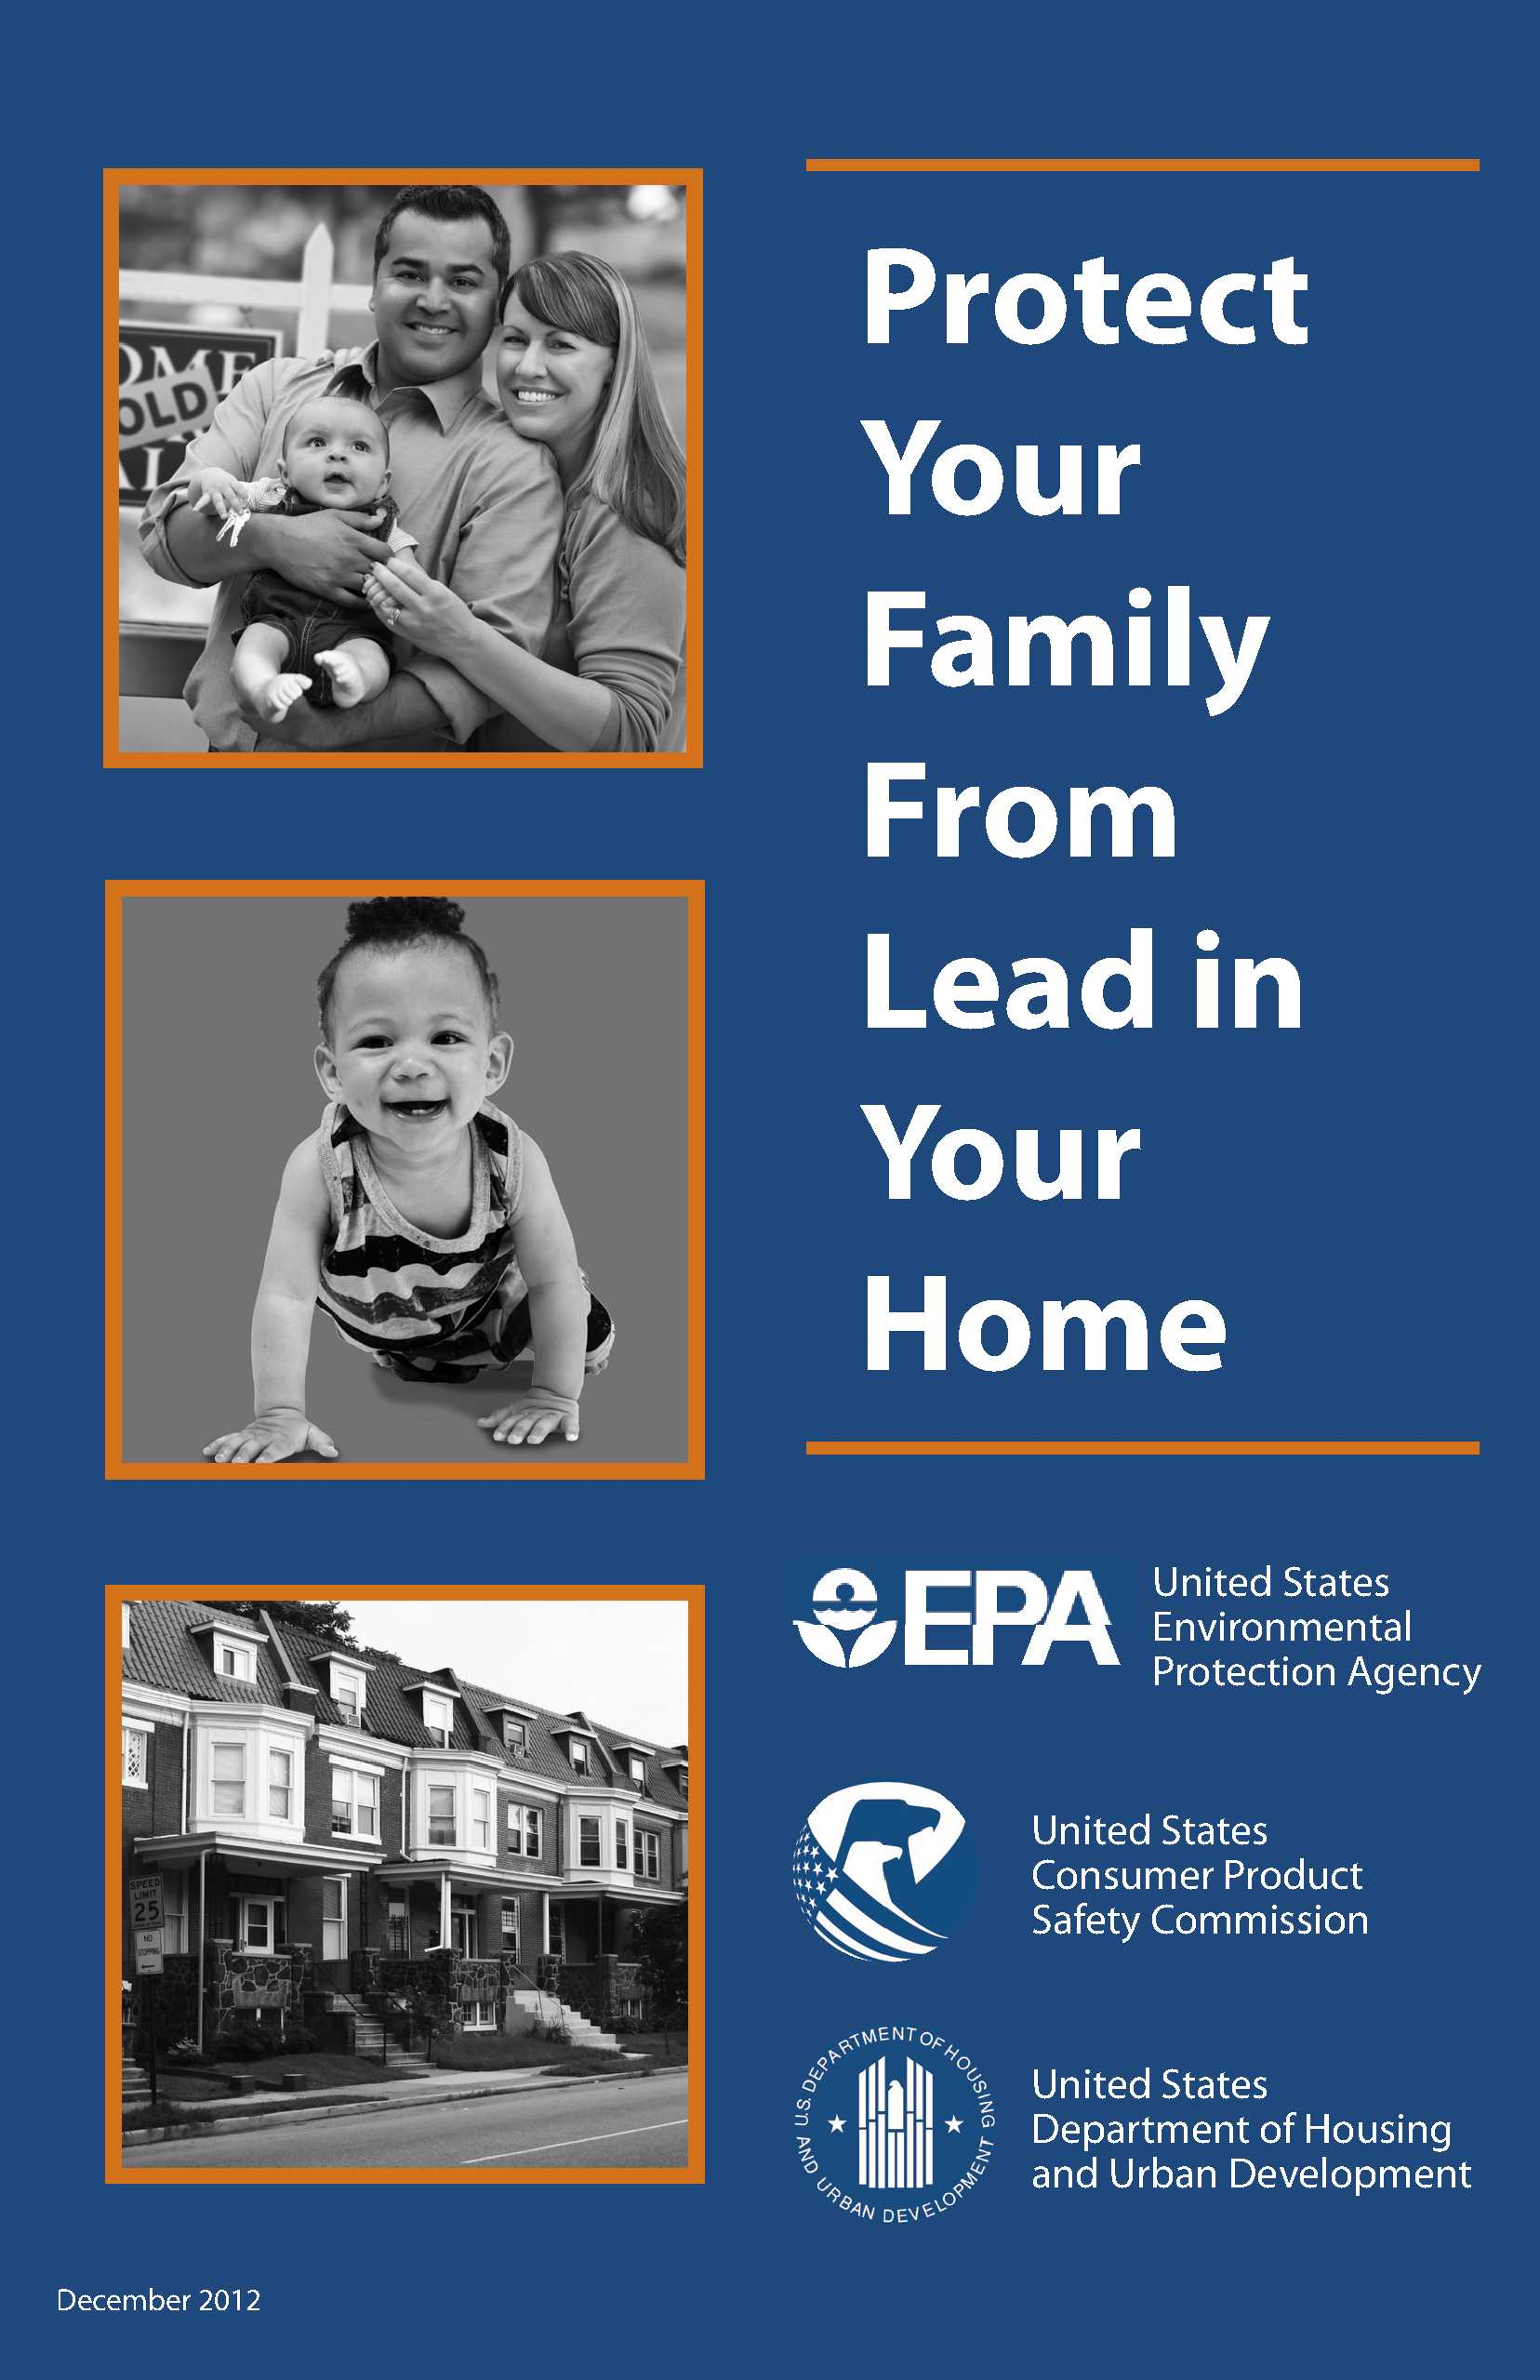 [Image: Protect Your Family Brochure]